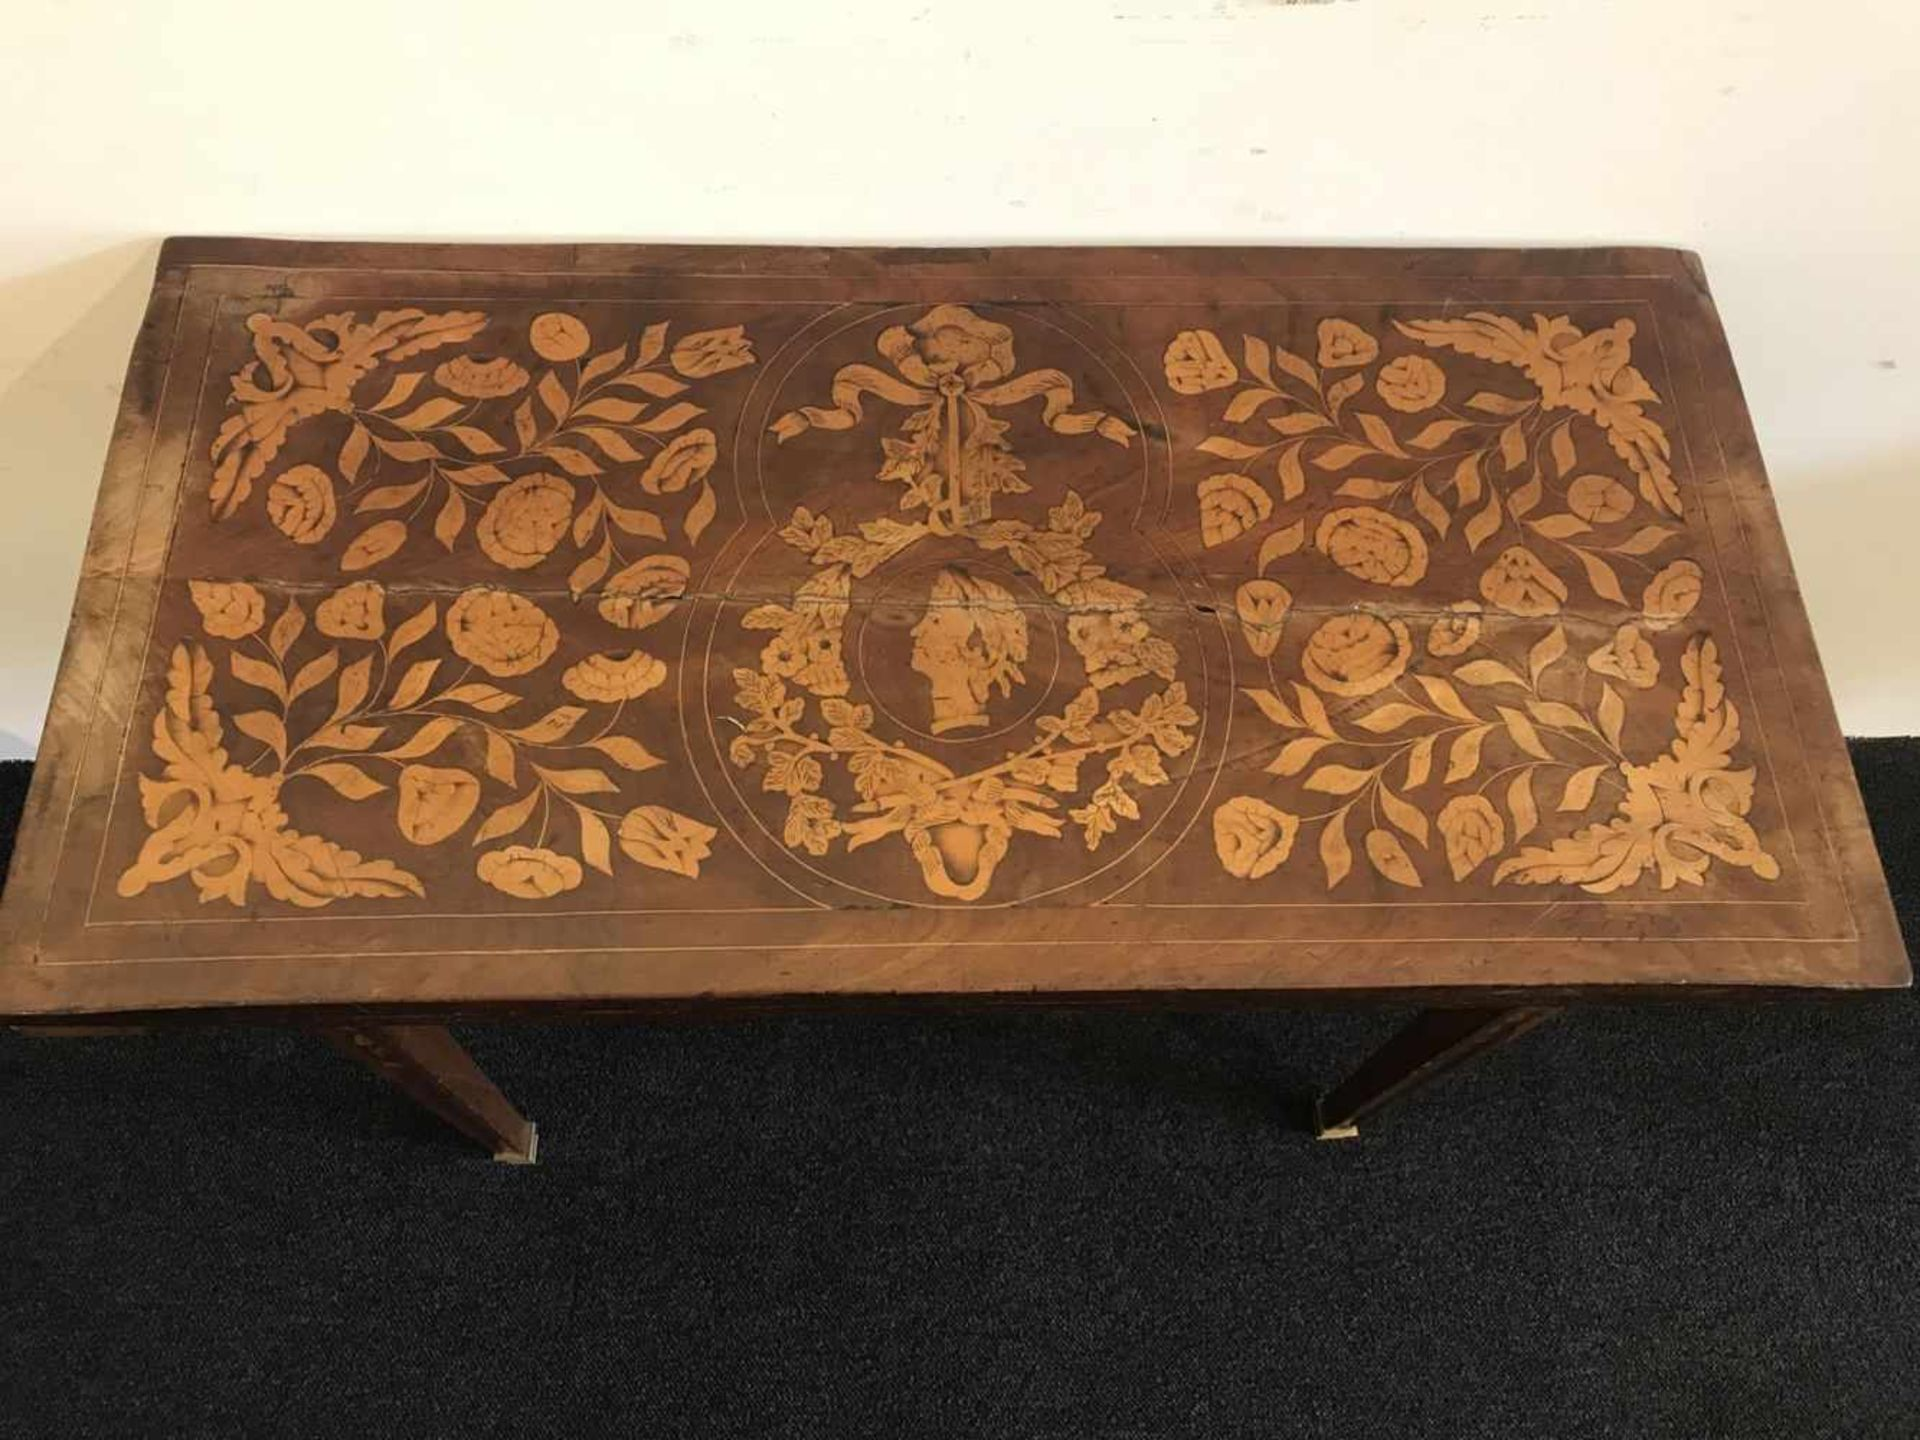 Los 99 - Card table foldable with marquetry